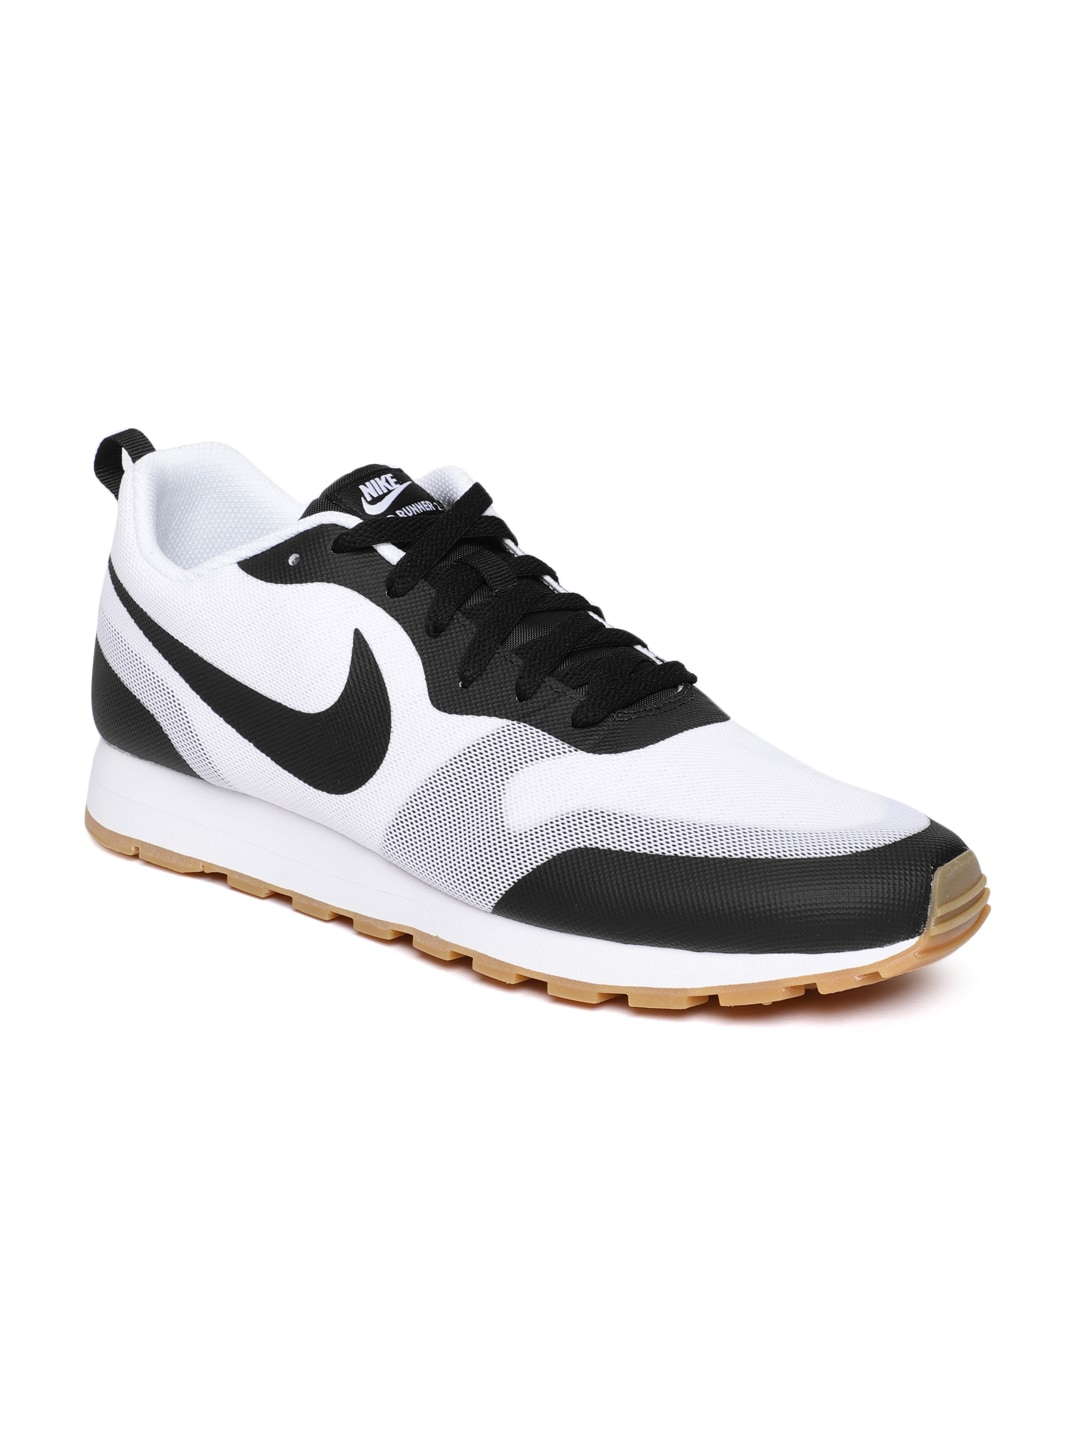 6112f90cec6fa Men s Nike Casual Shoes - Buy Nike Casual Shoes for Men Online in India